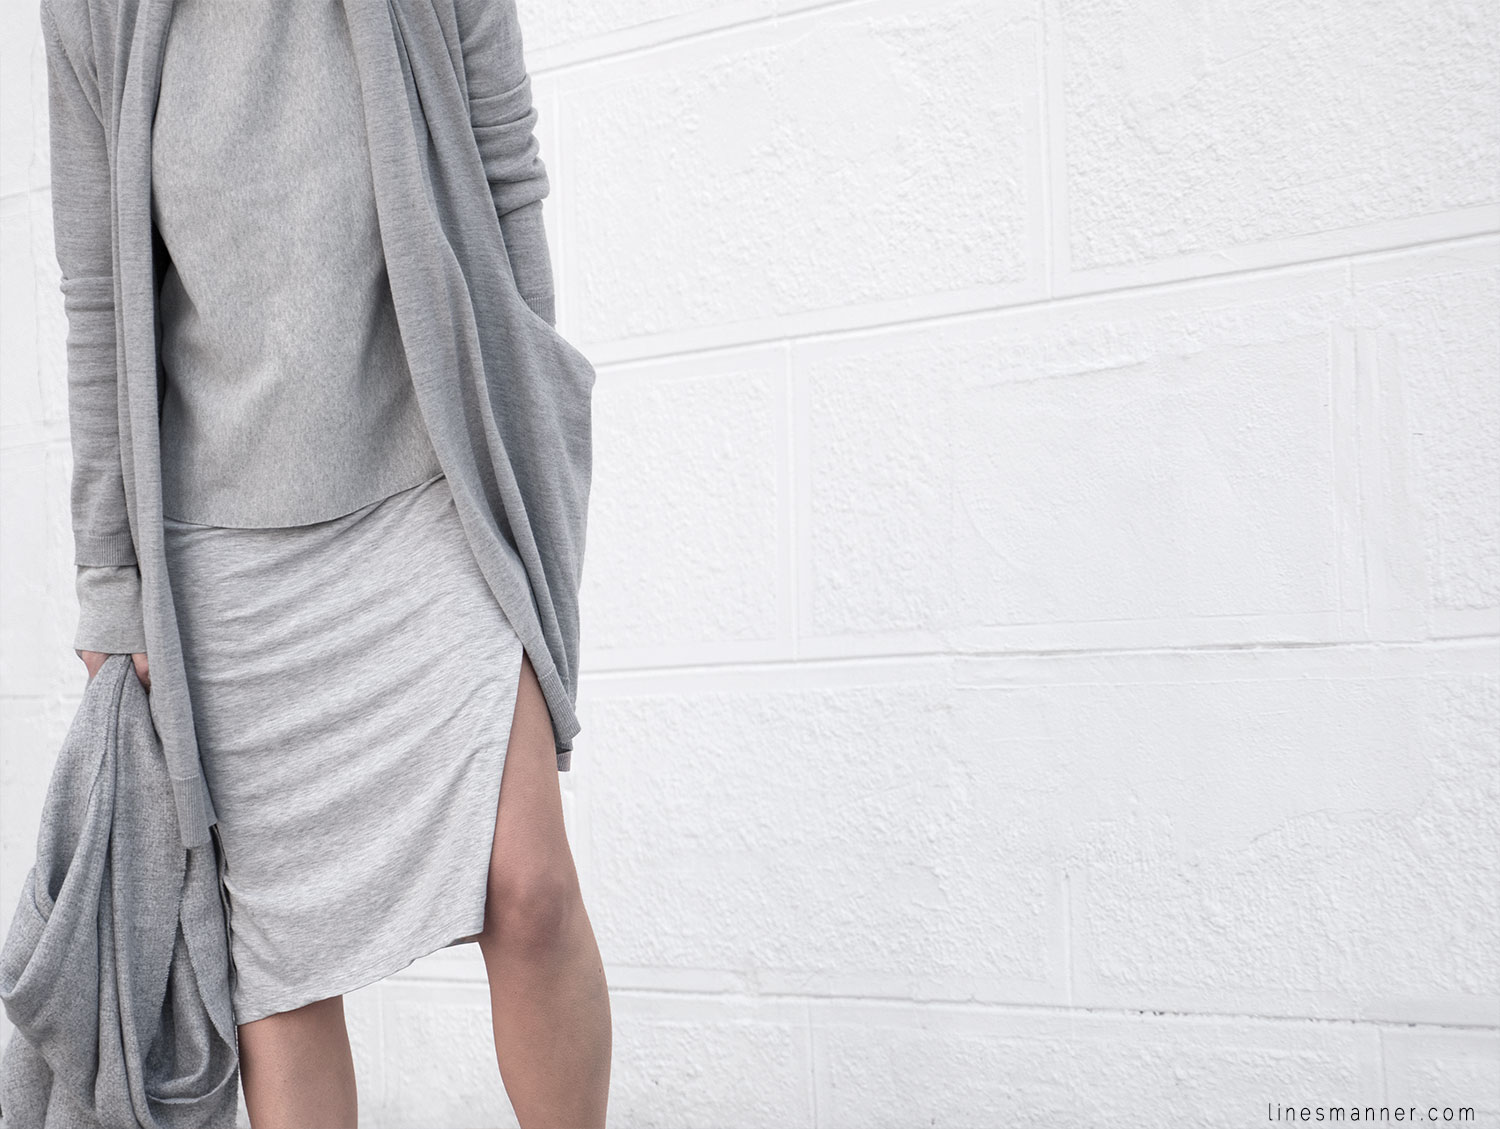 Lines-Manner-Outfit-Grey_on_grey-All_grey-Simplicty-Relaxed-Casual-Textures-Essential-Details-Staples-Minimal-Knit-Cardigan-Coisa-Layering-10